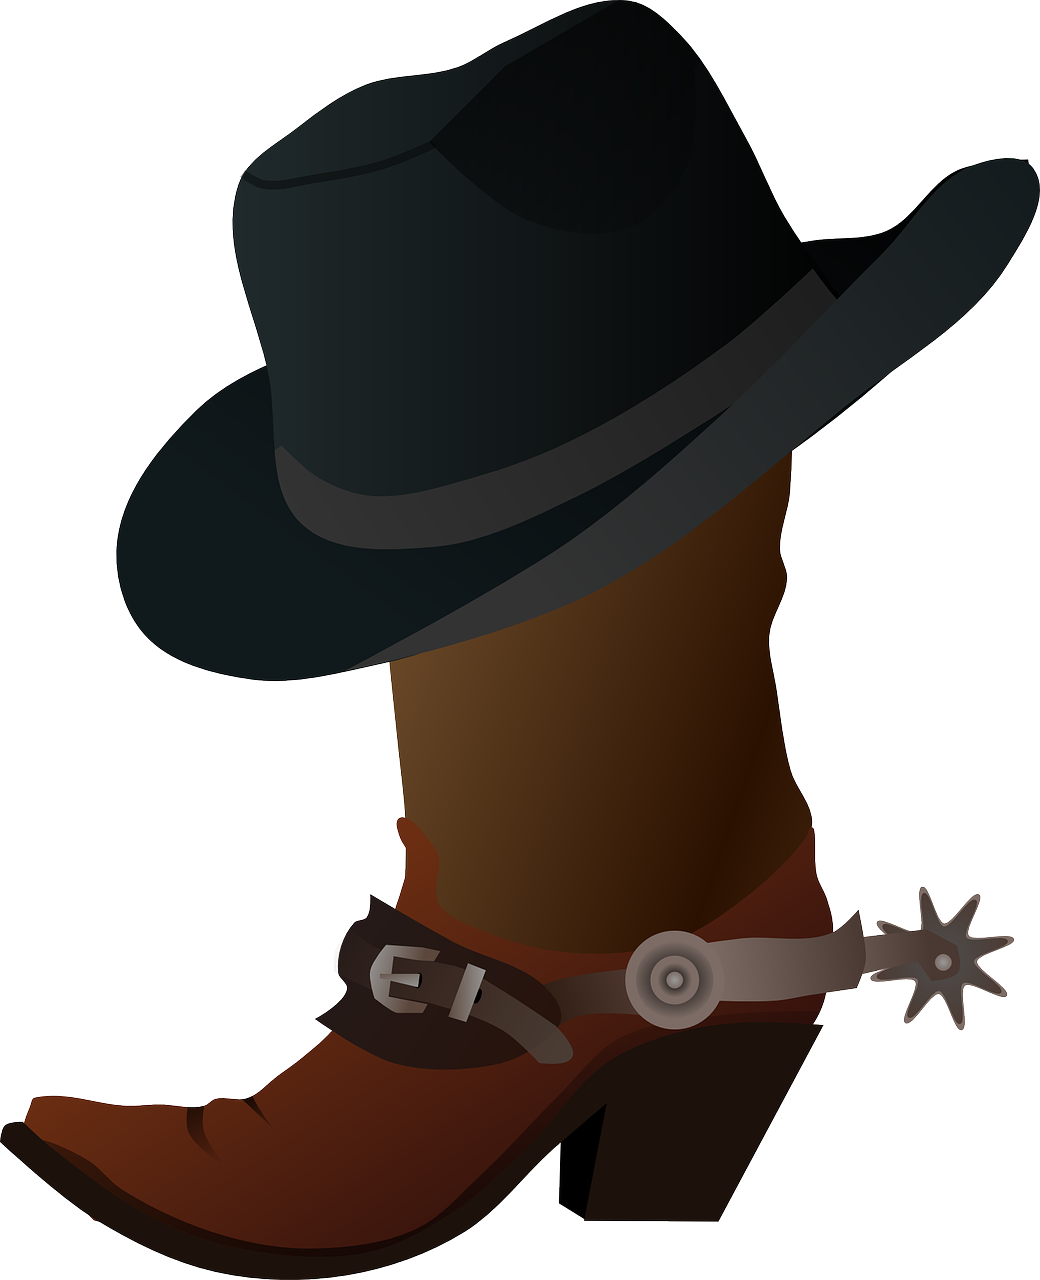 Free commercial use cowboy spurs clipart svg royalty free library Free Image on Pixabay - Spurs, Cowboy, Boots, Hat, Clothing | ads ... svg royalty free library